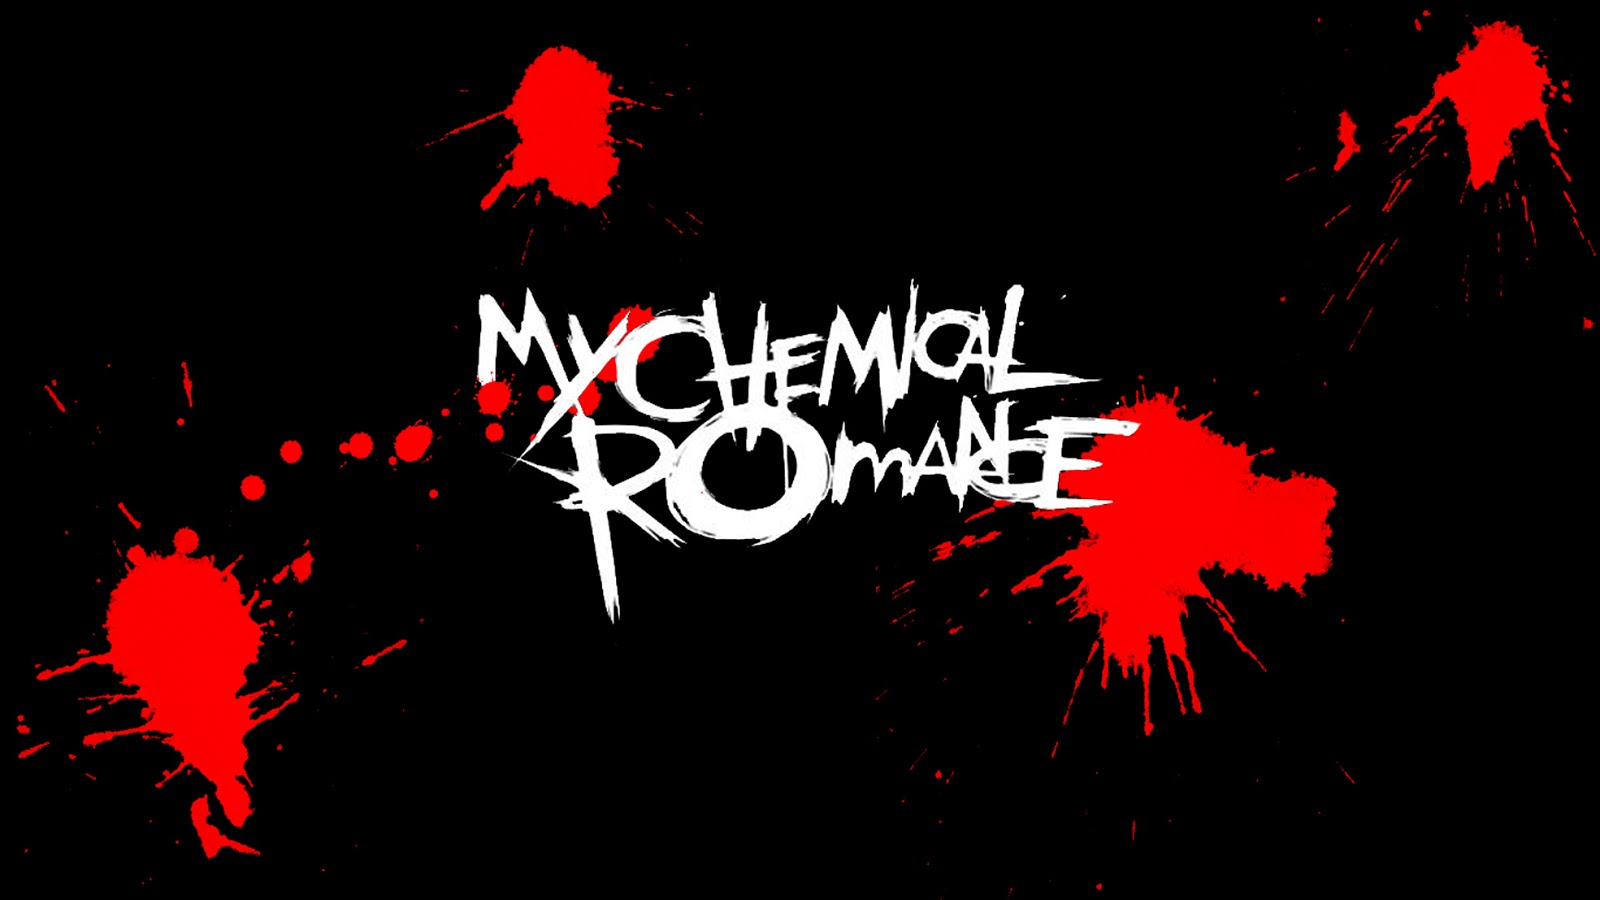 Emo Bandzzzz (mostly brendon urie) images My Chemical Romance Wallpaper 1 HD wallpaper and background photos